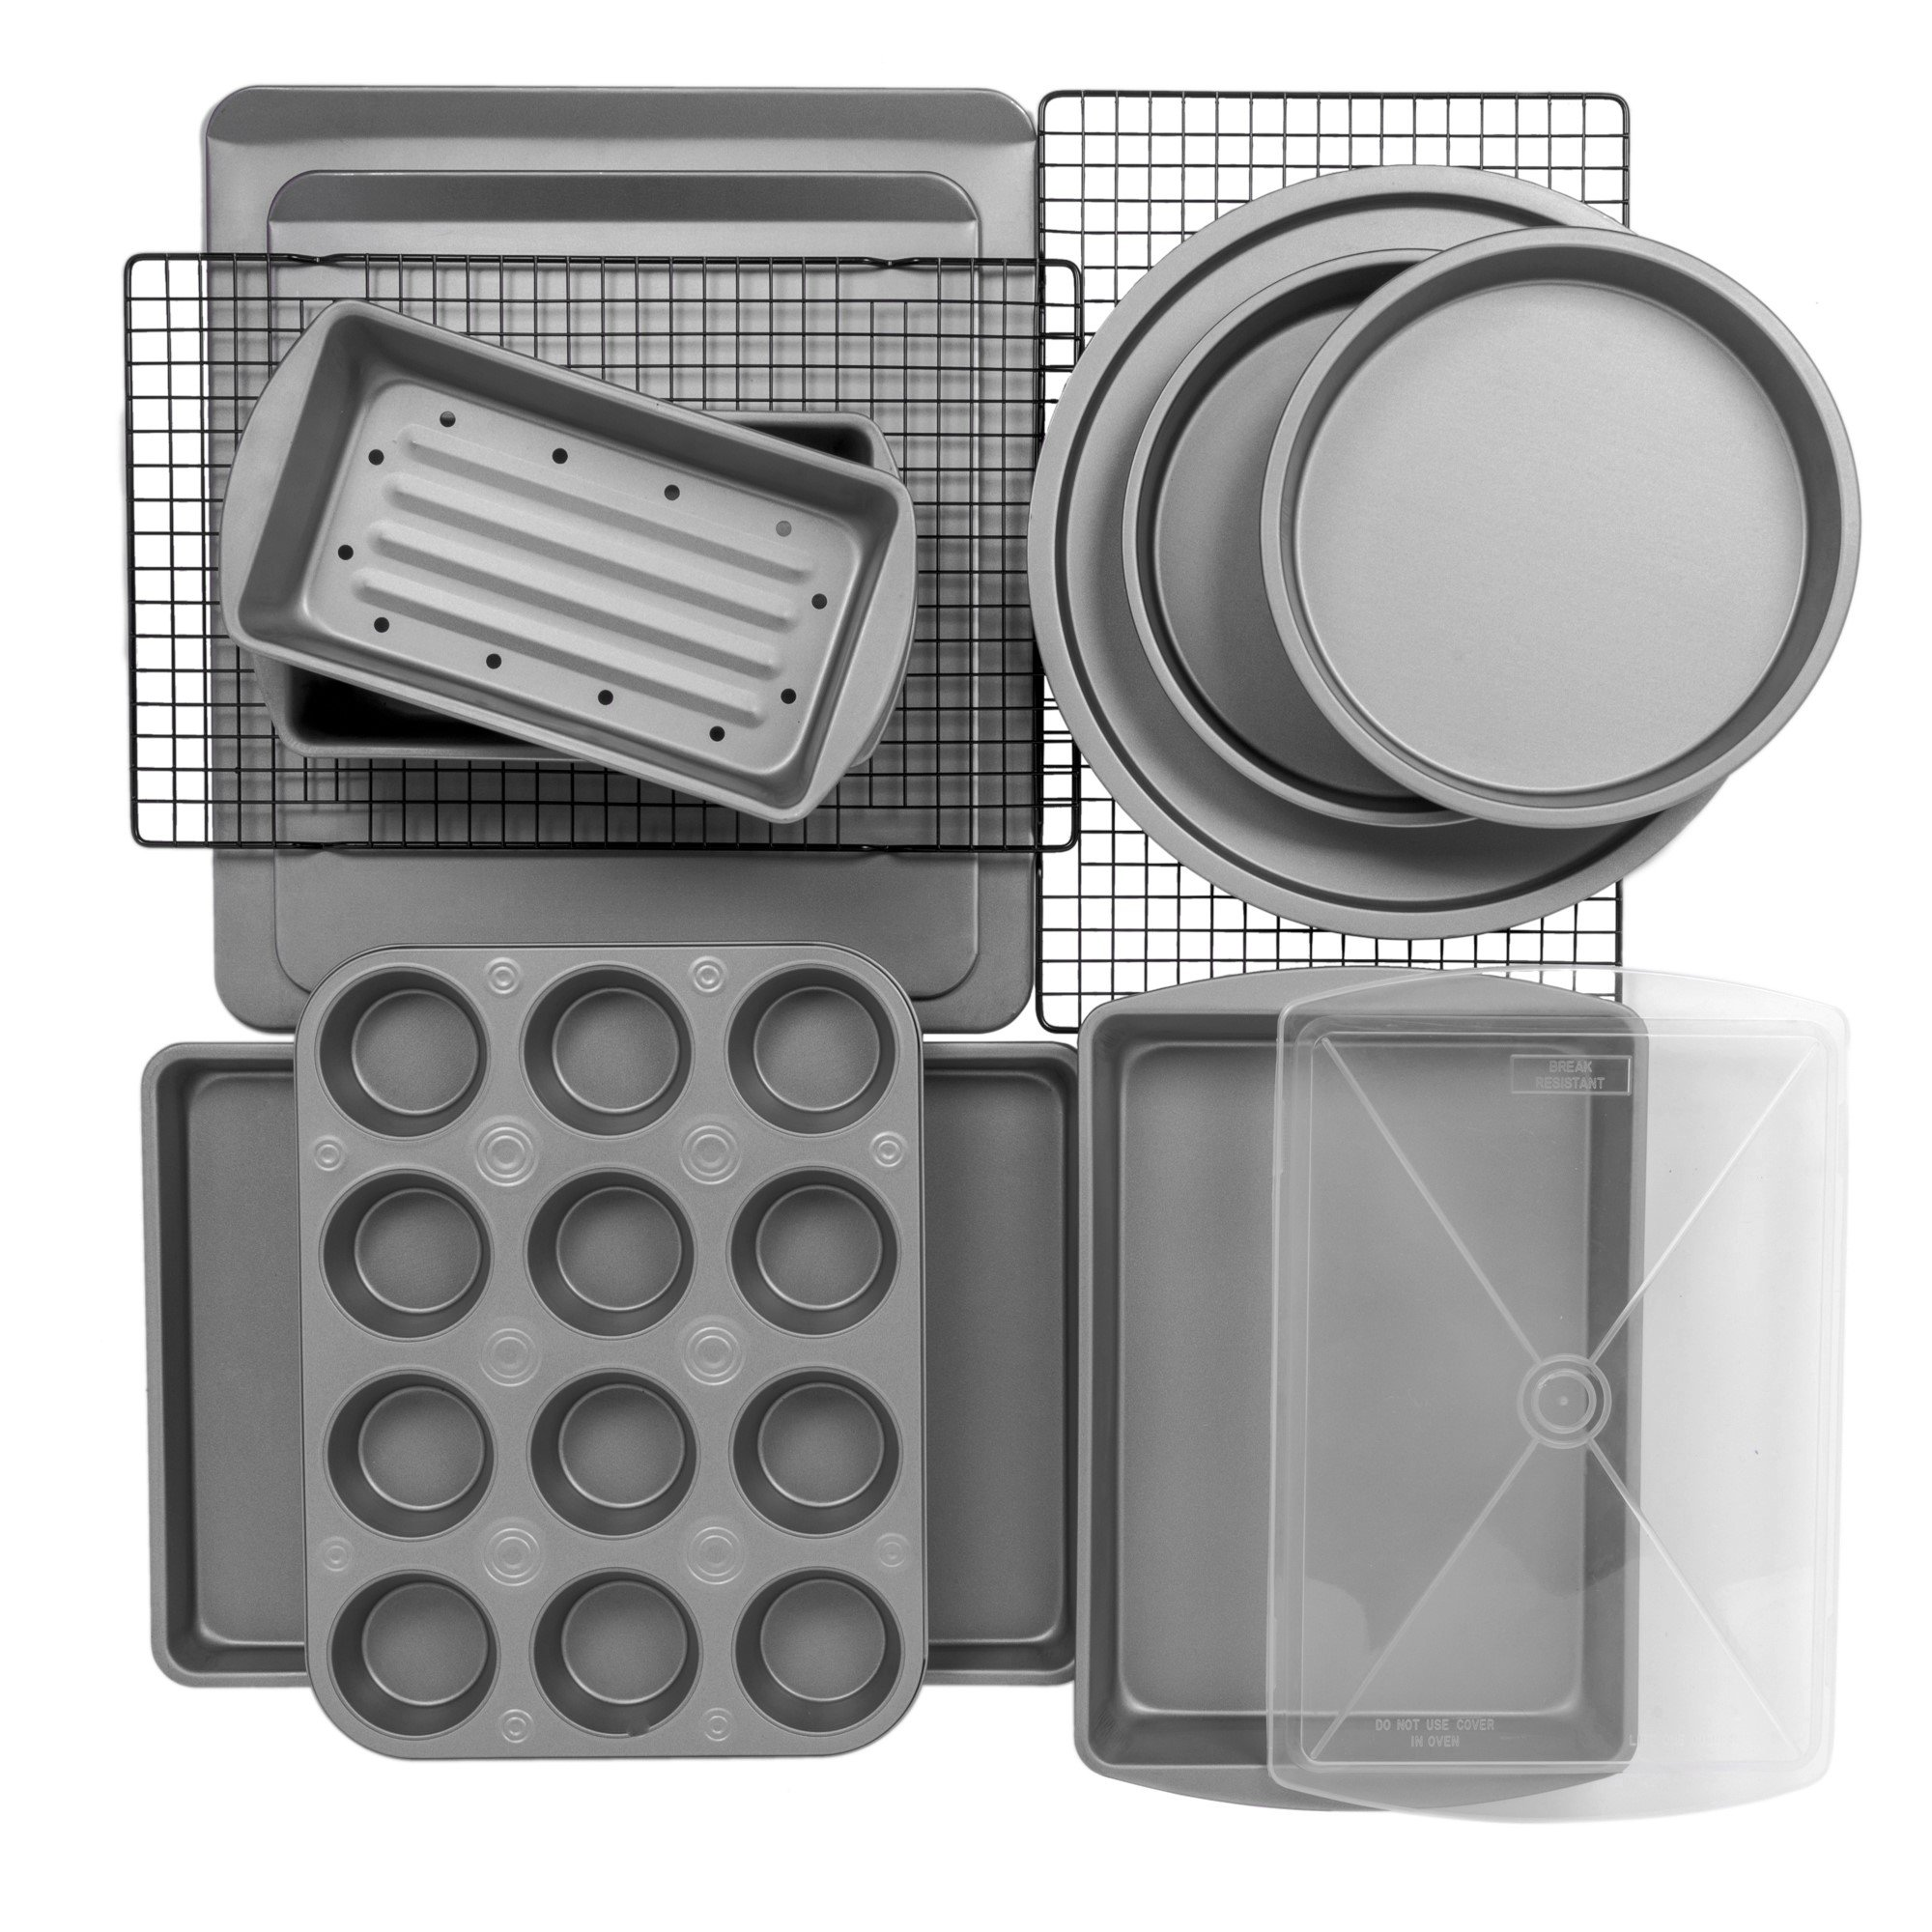 12-Piece Bakeware Set, Muffin Cookie & Pizza Pans-Bakeware Sets 3.24